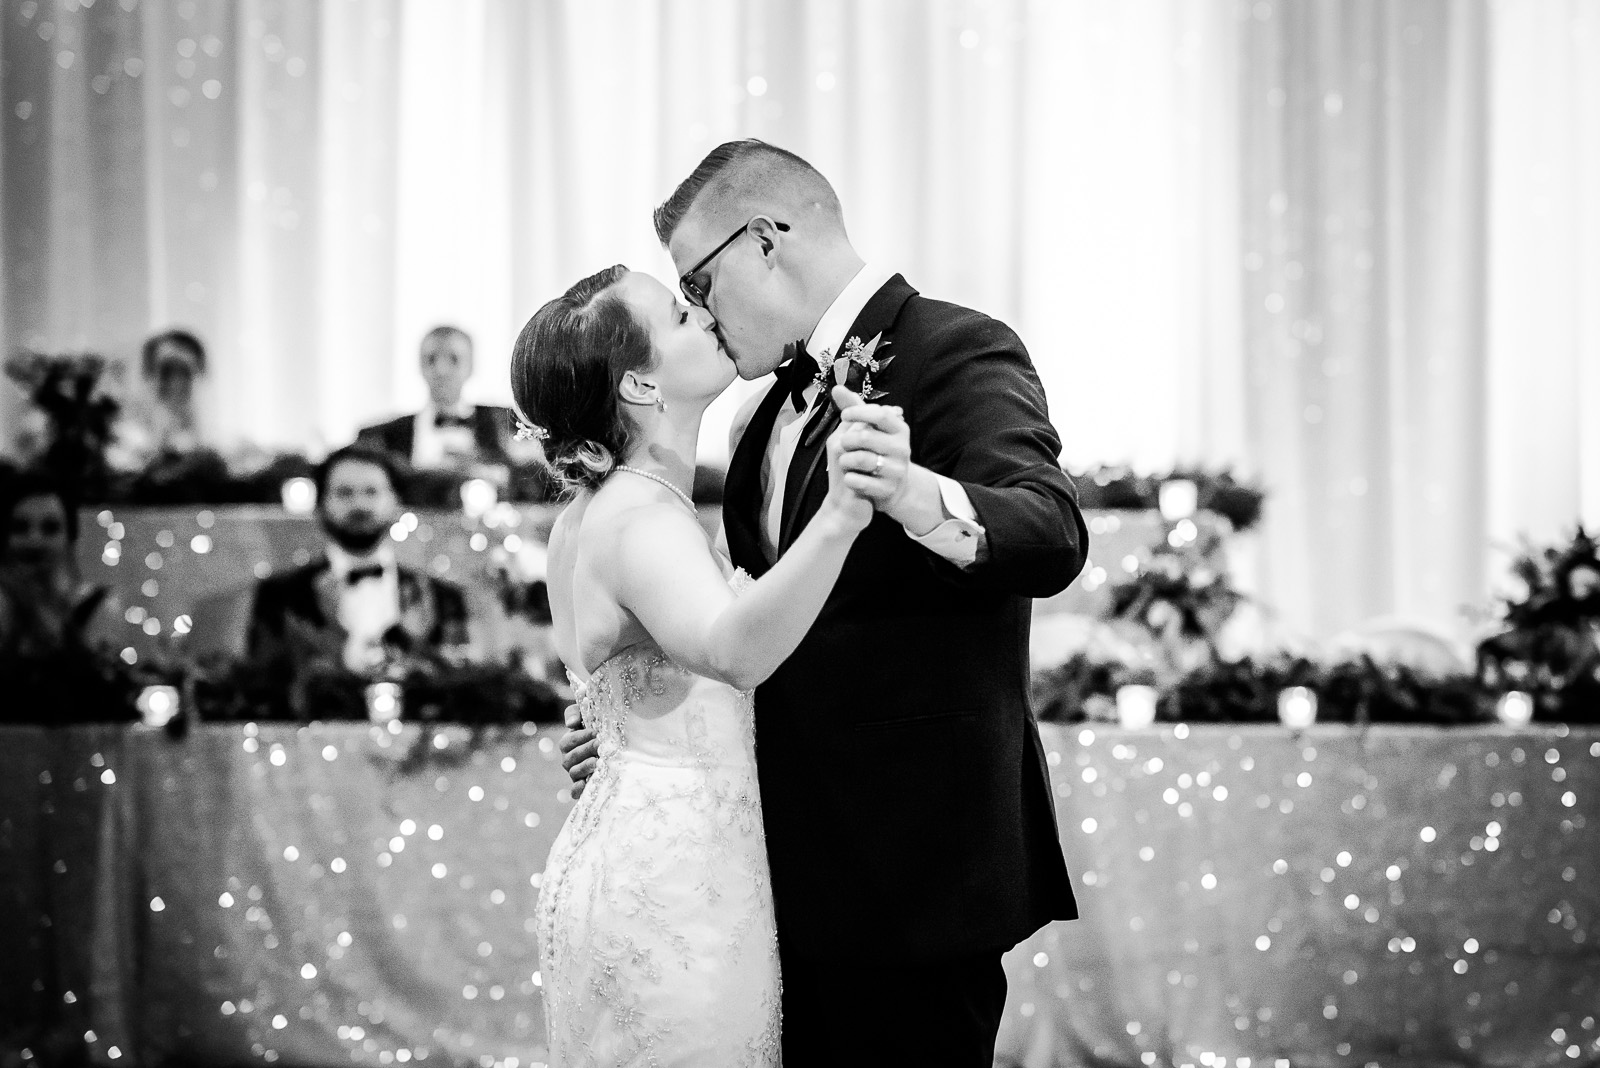 Eric_and_Christy_Photography_Blog_2018_Wed_moments-70